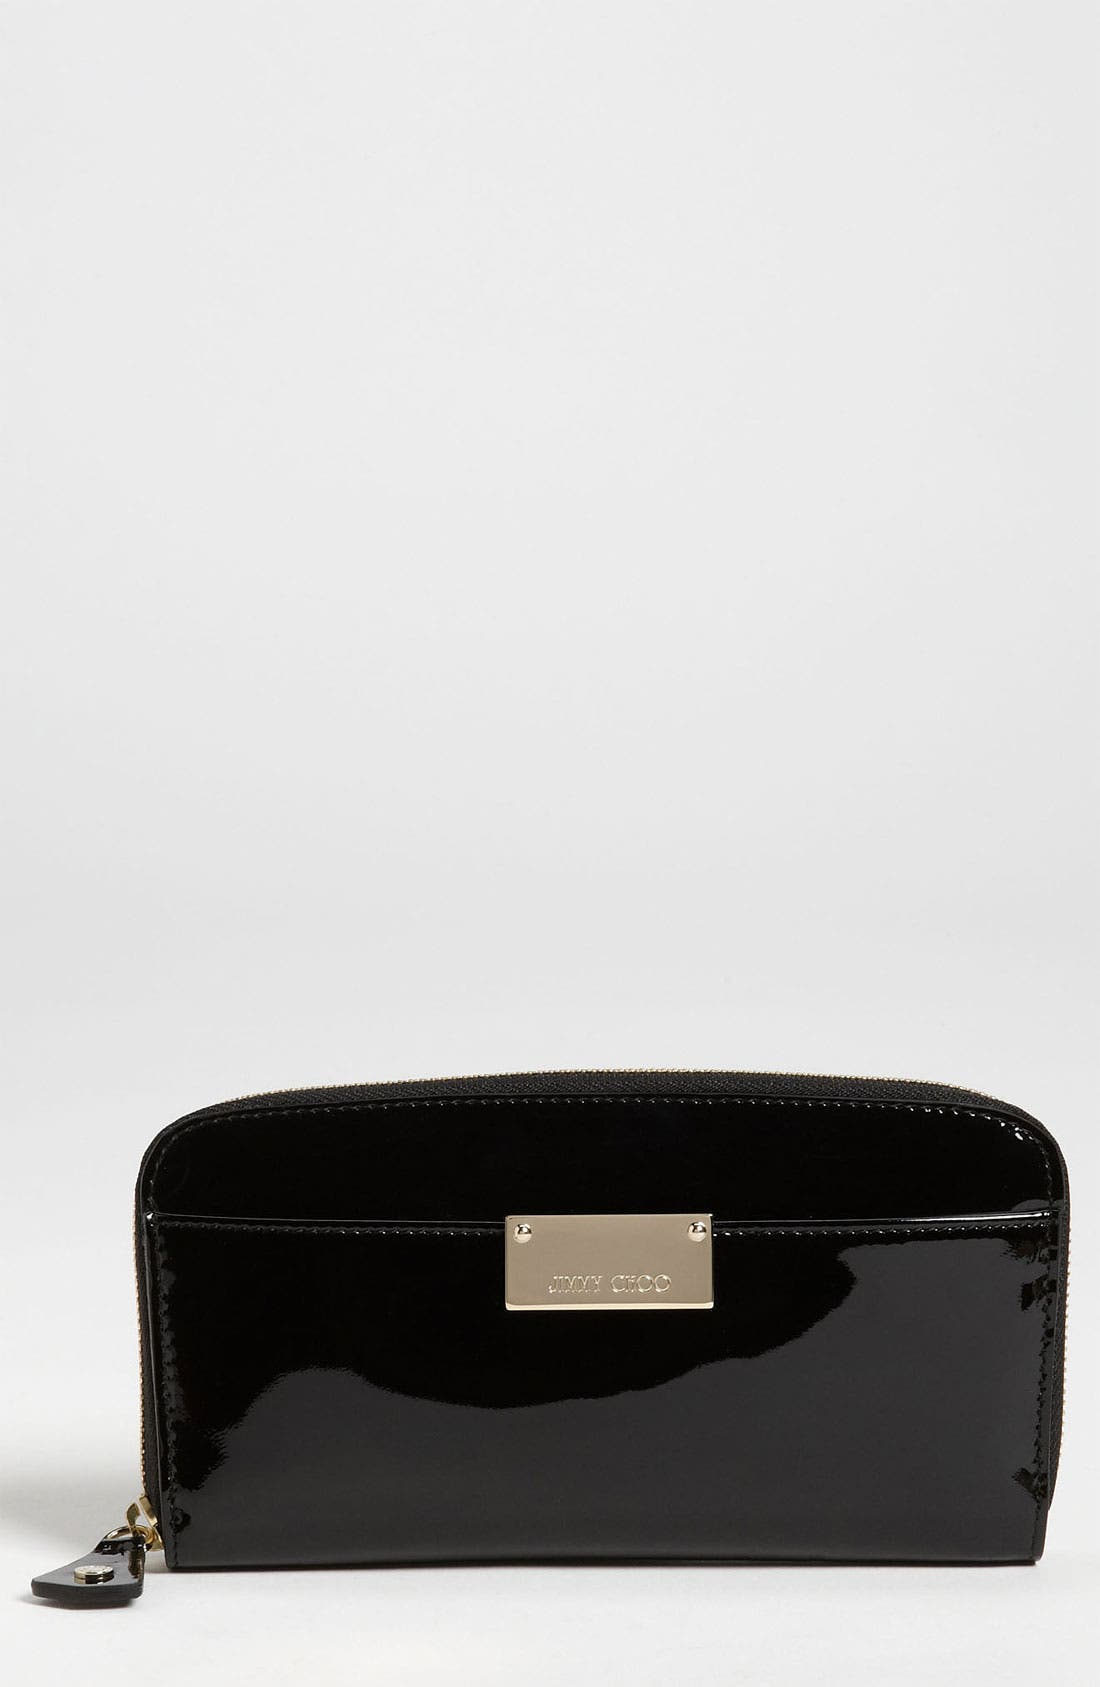 Main Image - Jimmy Choo 'Rush' Patent Leather Wallet